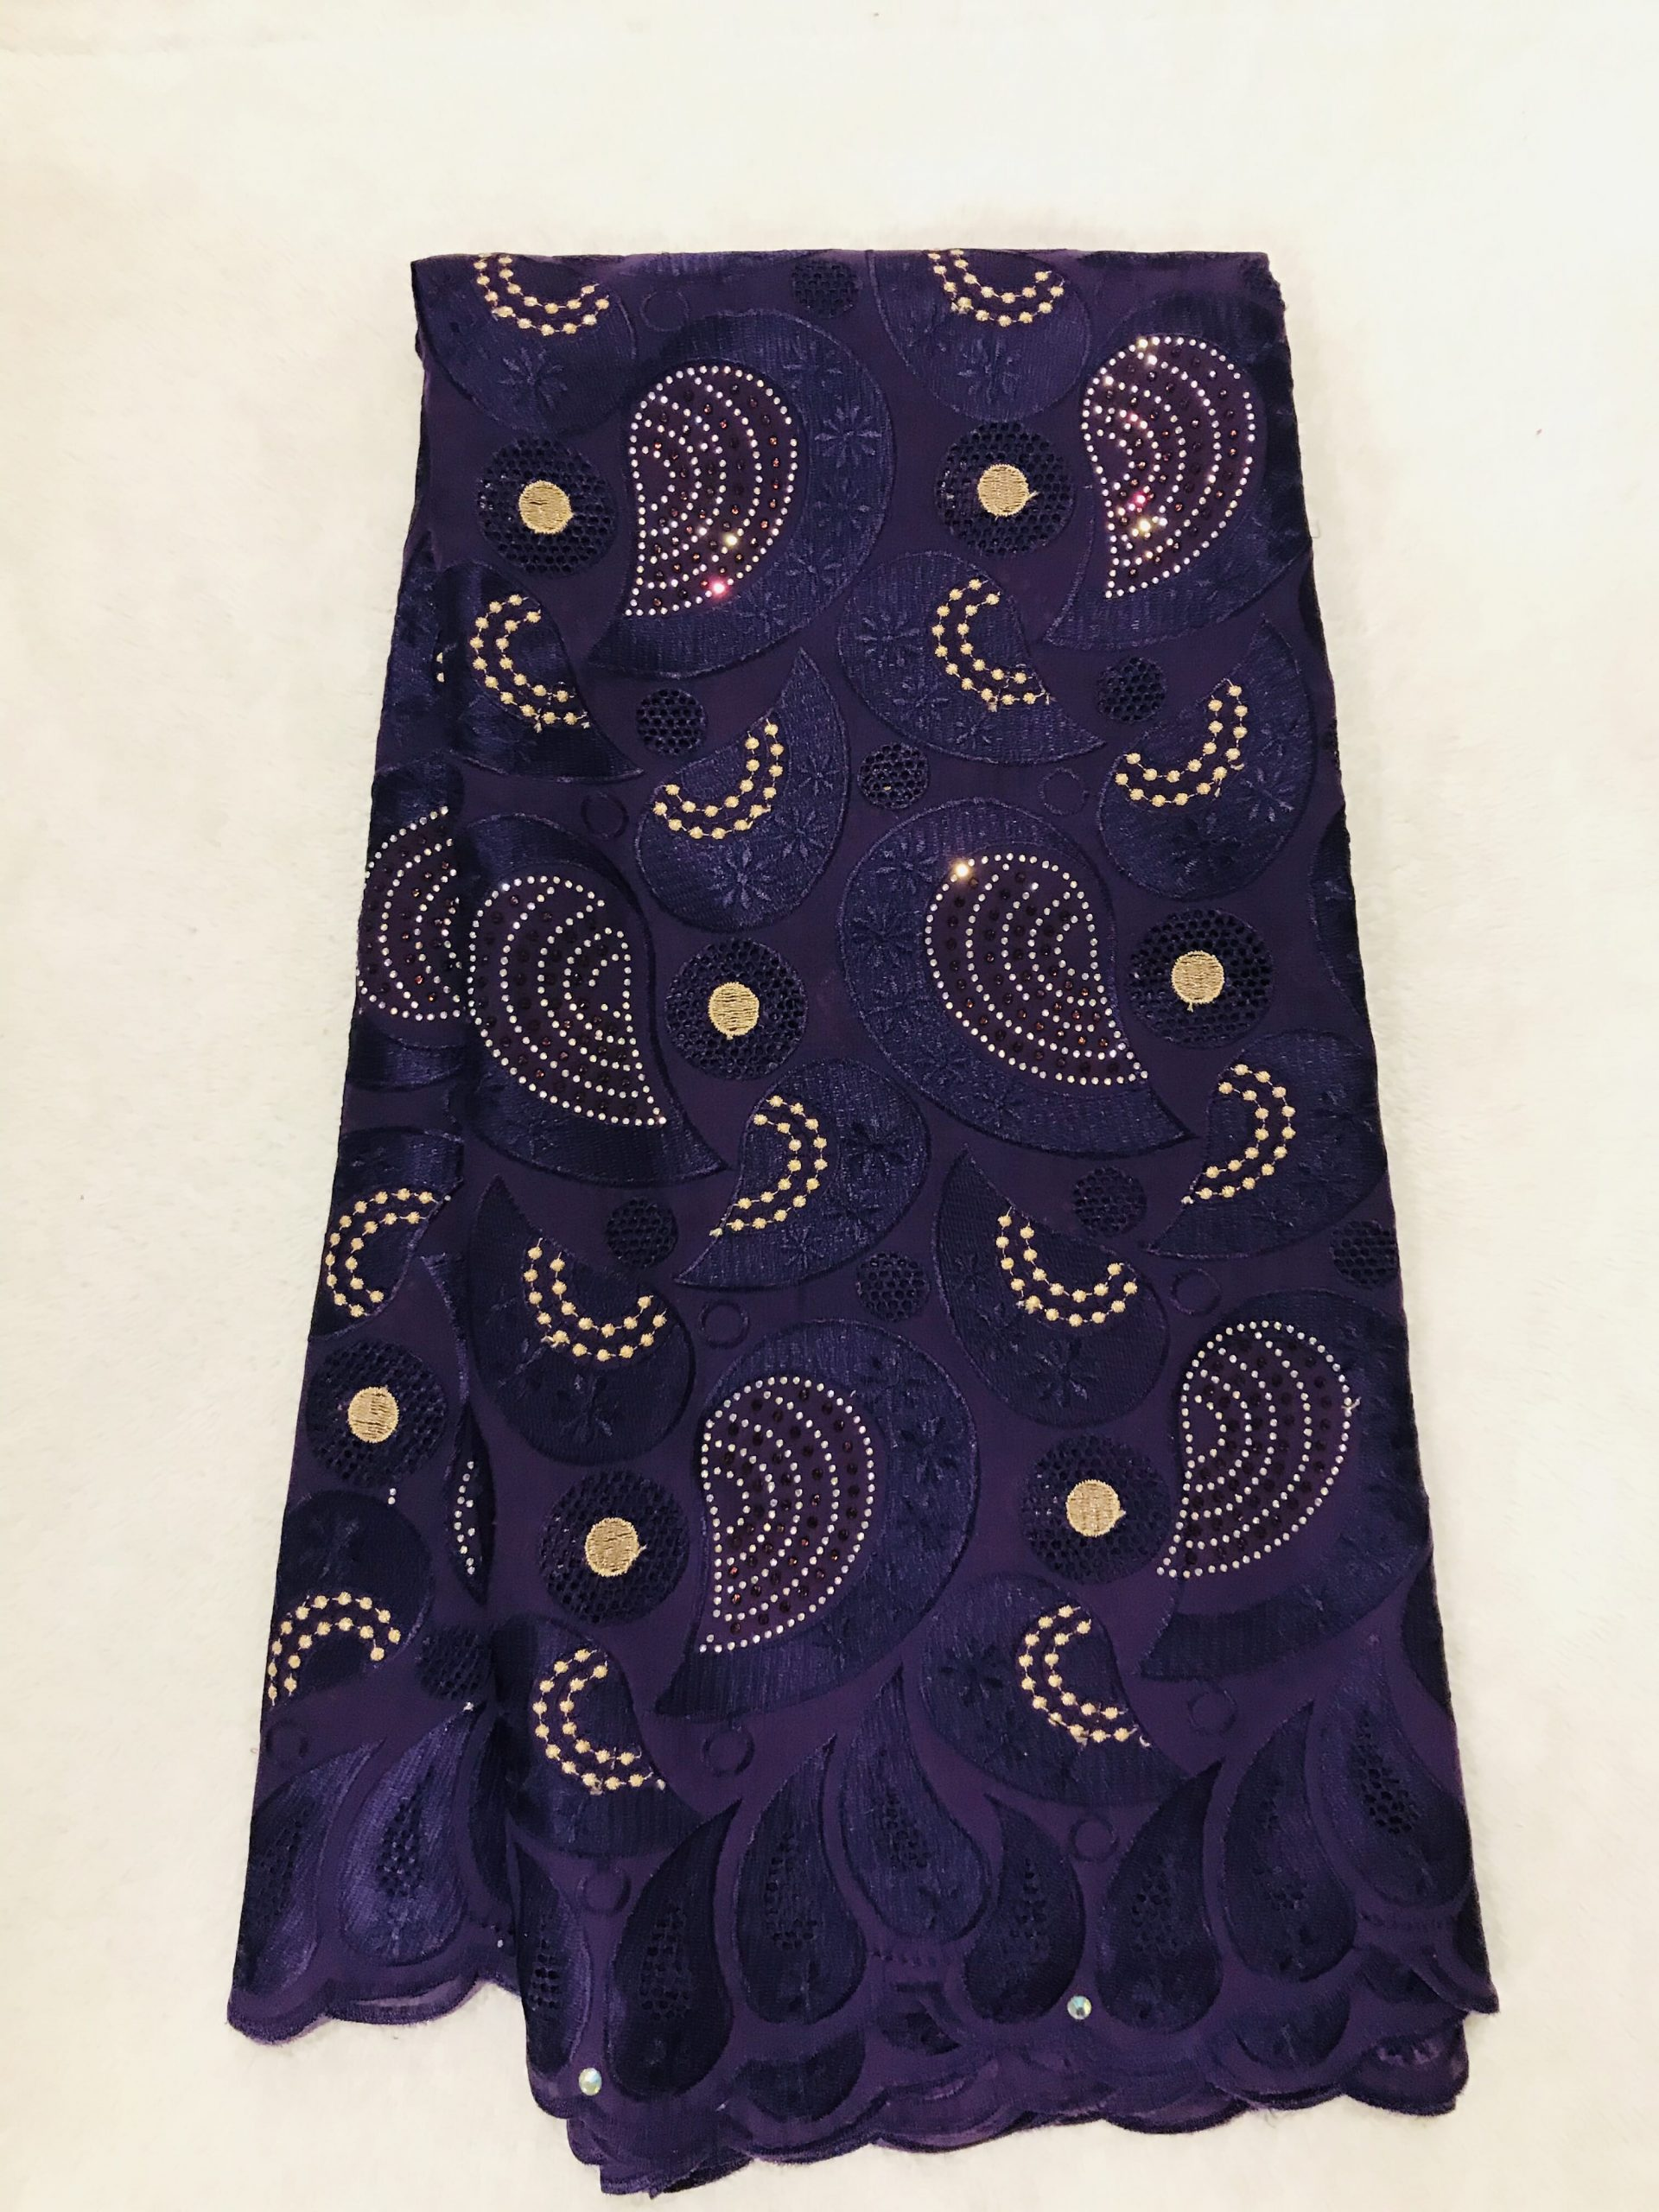 Bbfash African Fashion Lace Fabric. 5 yards 2019 fancy Purple Embroidery Stones Lace.French Lace Fabric Embroidered and Rhinestones Coton Cord Lace for Wedding  Party & More